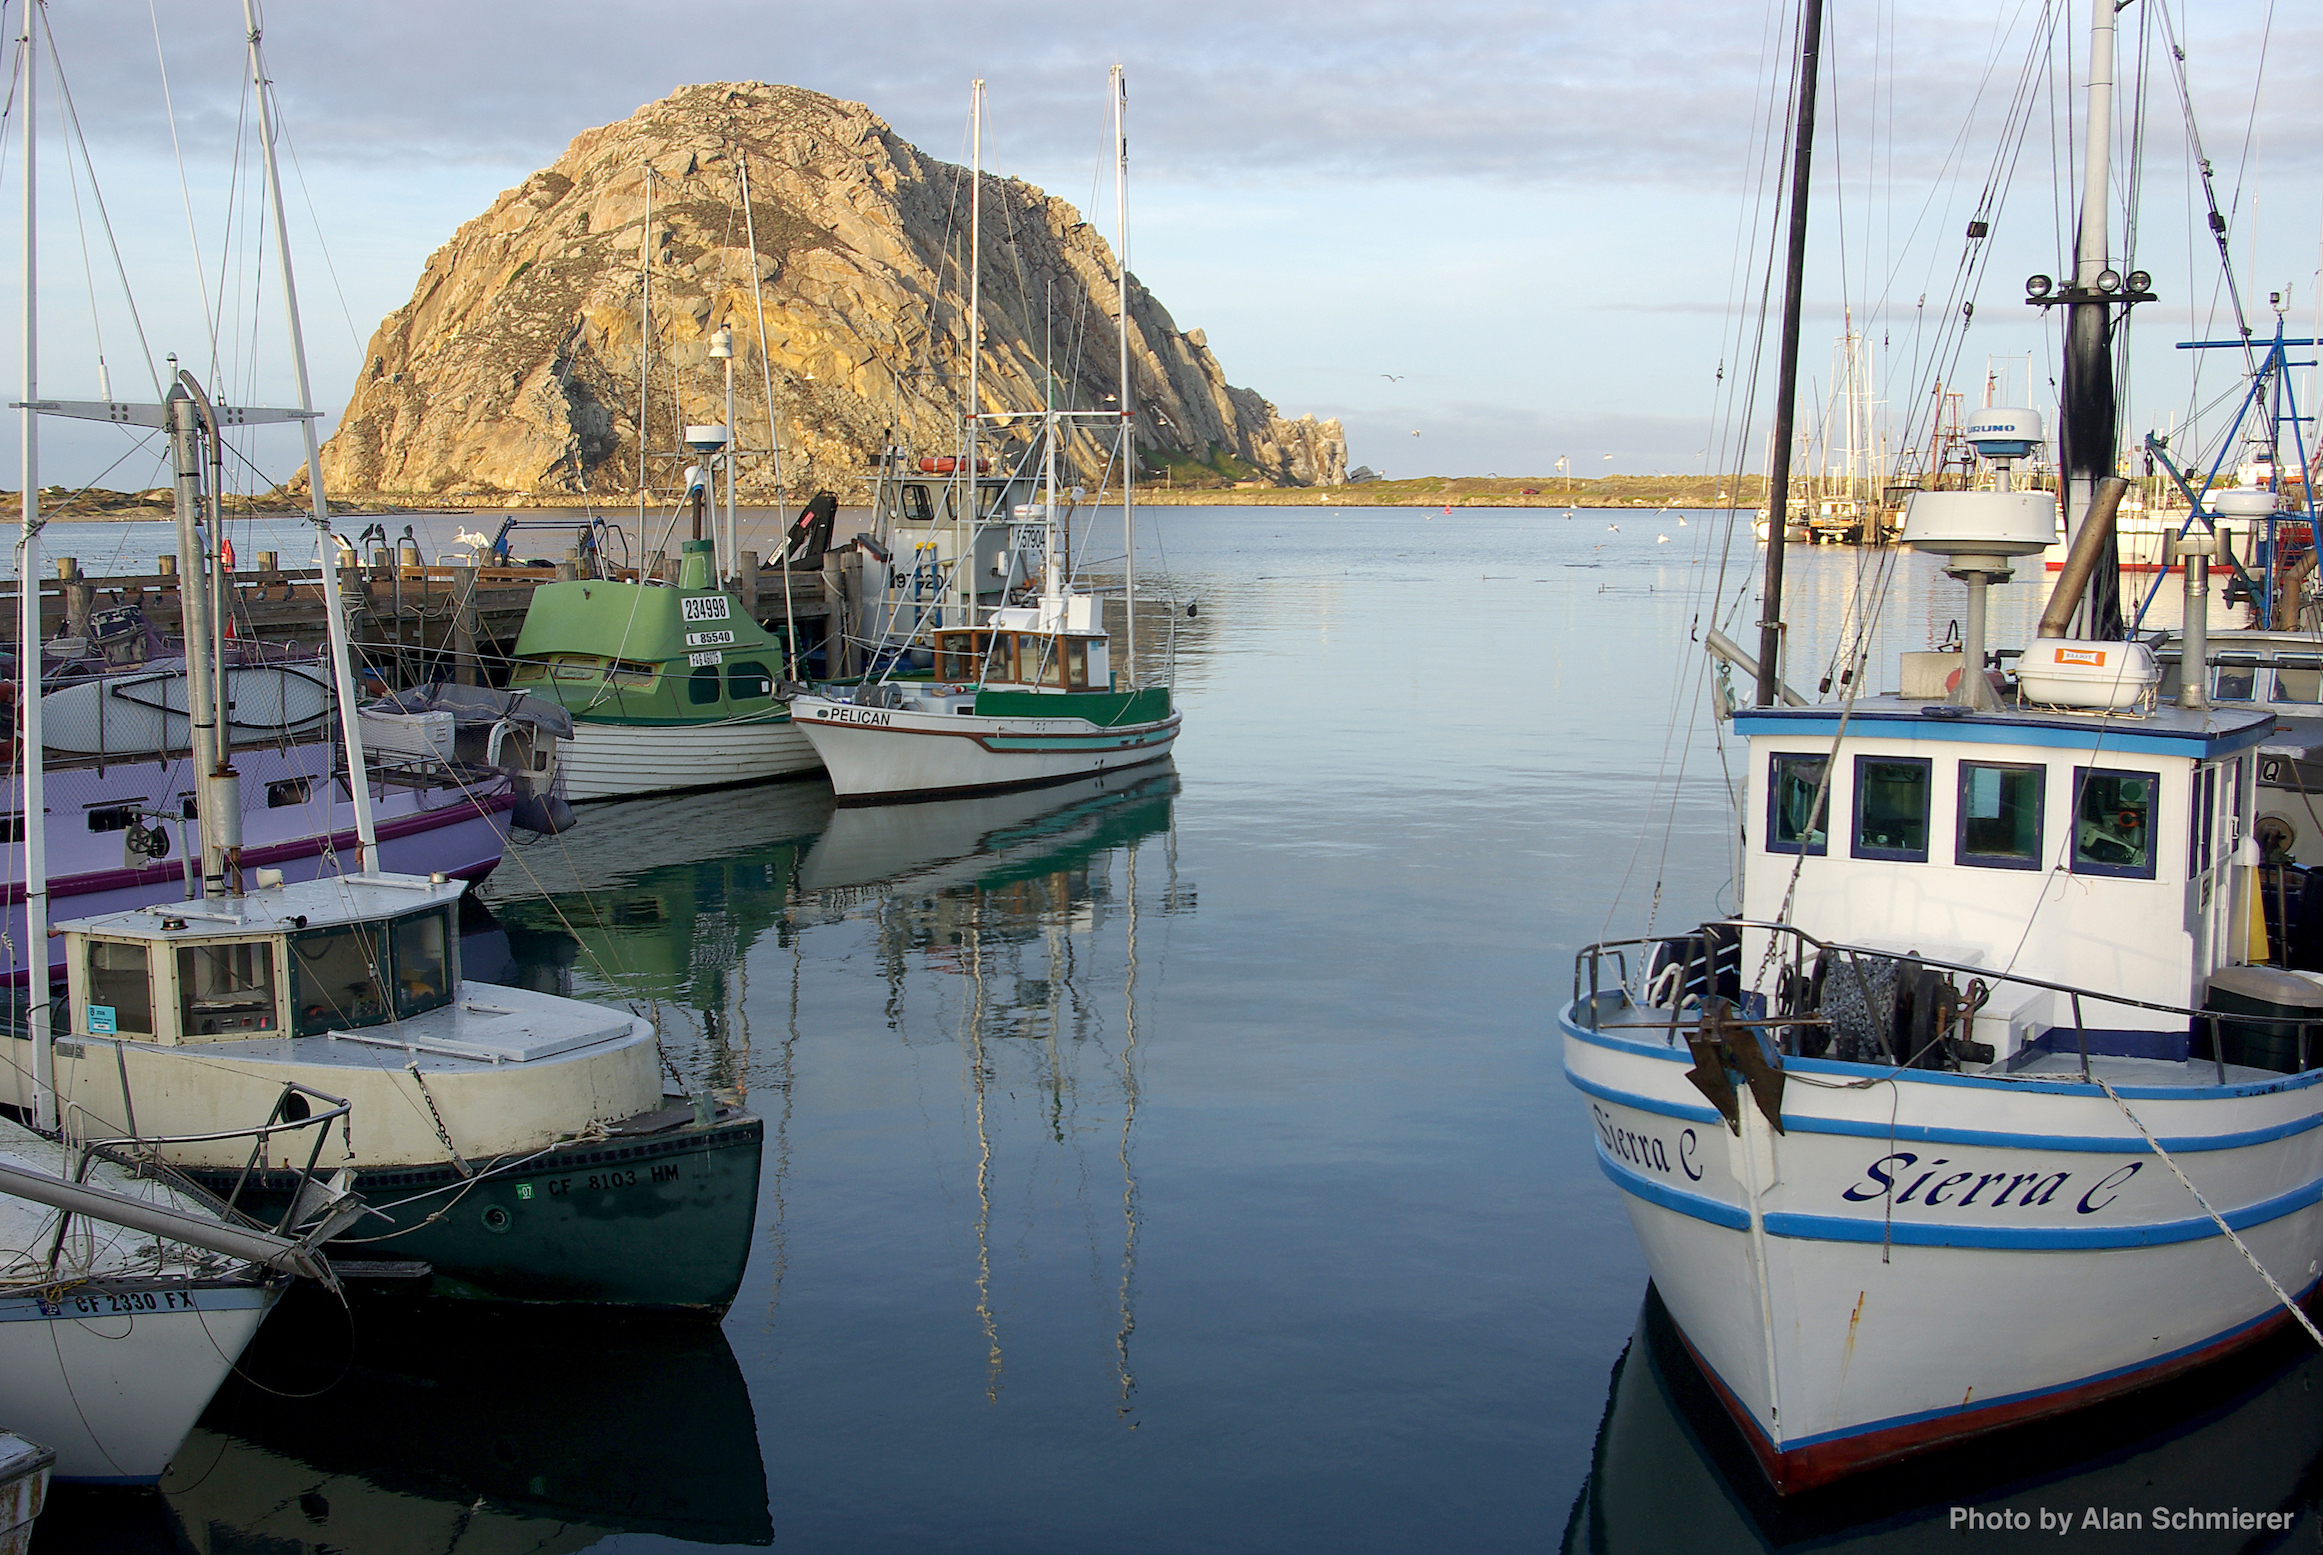 EARLY_MORNING_AT_MORRO_BAY_HARBOR_-065_(921959766)